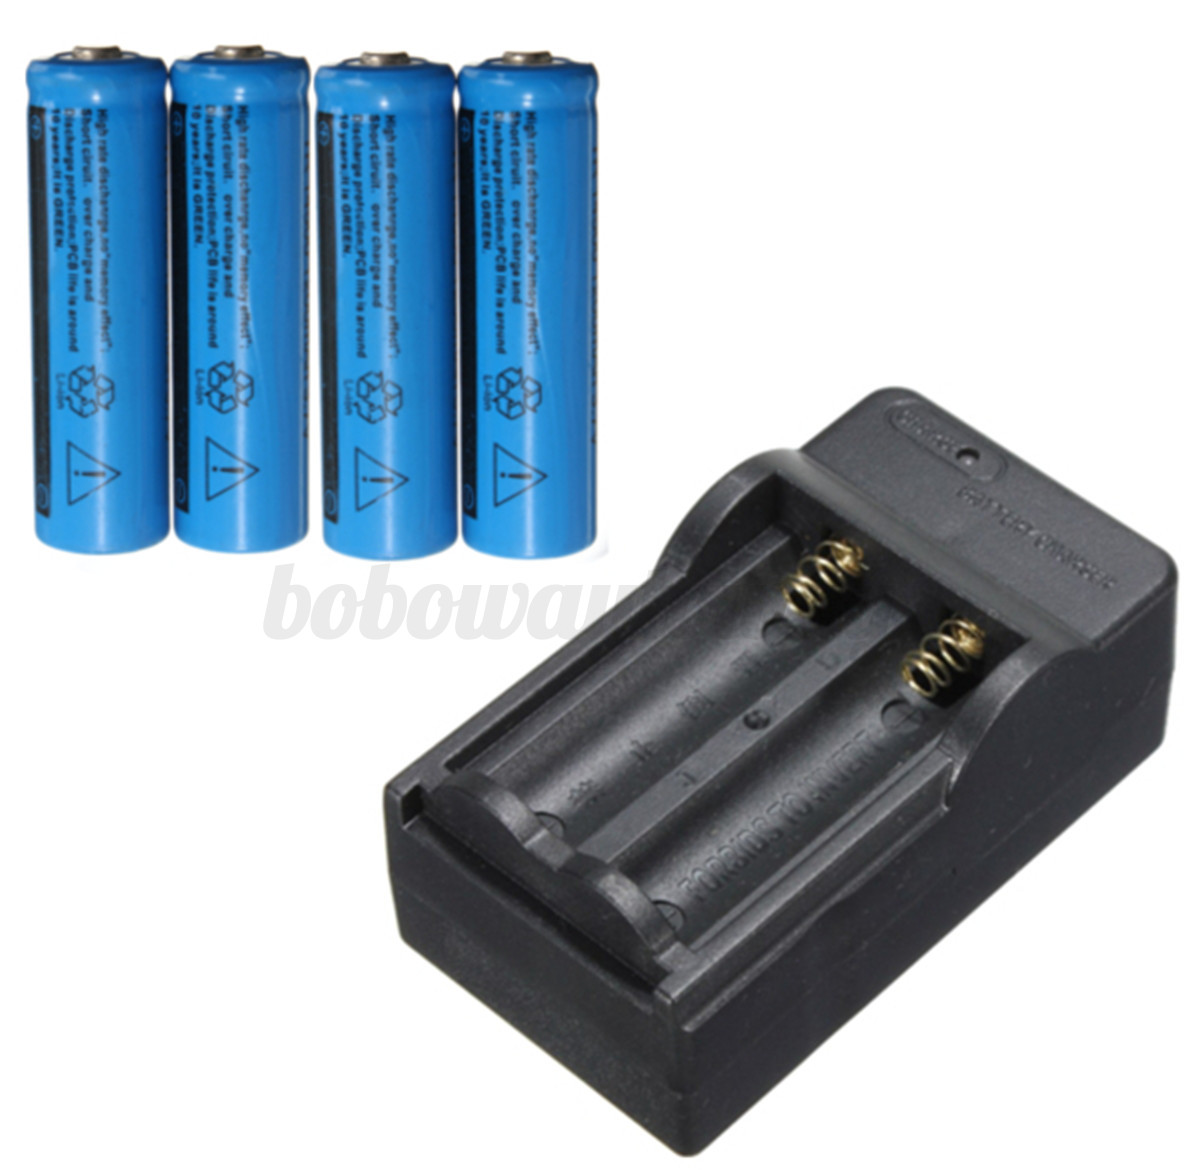 3 7v 1200mah 14500 aa li ion rechargeable batterie pour lampe torche frontale ebay. Black Bedroom Furniture Sets. Home Design Ideas